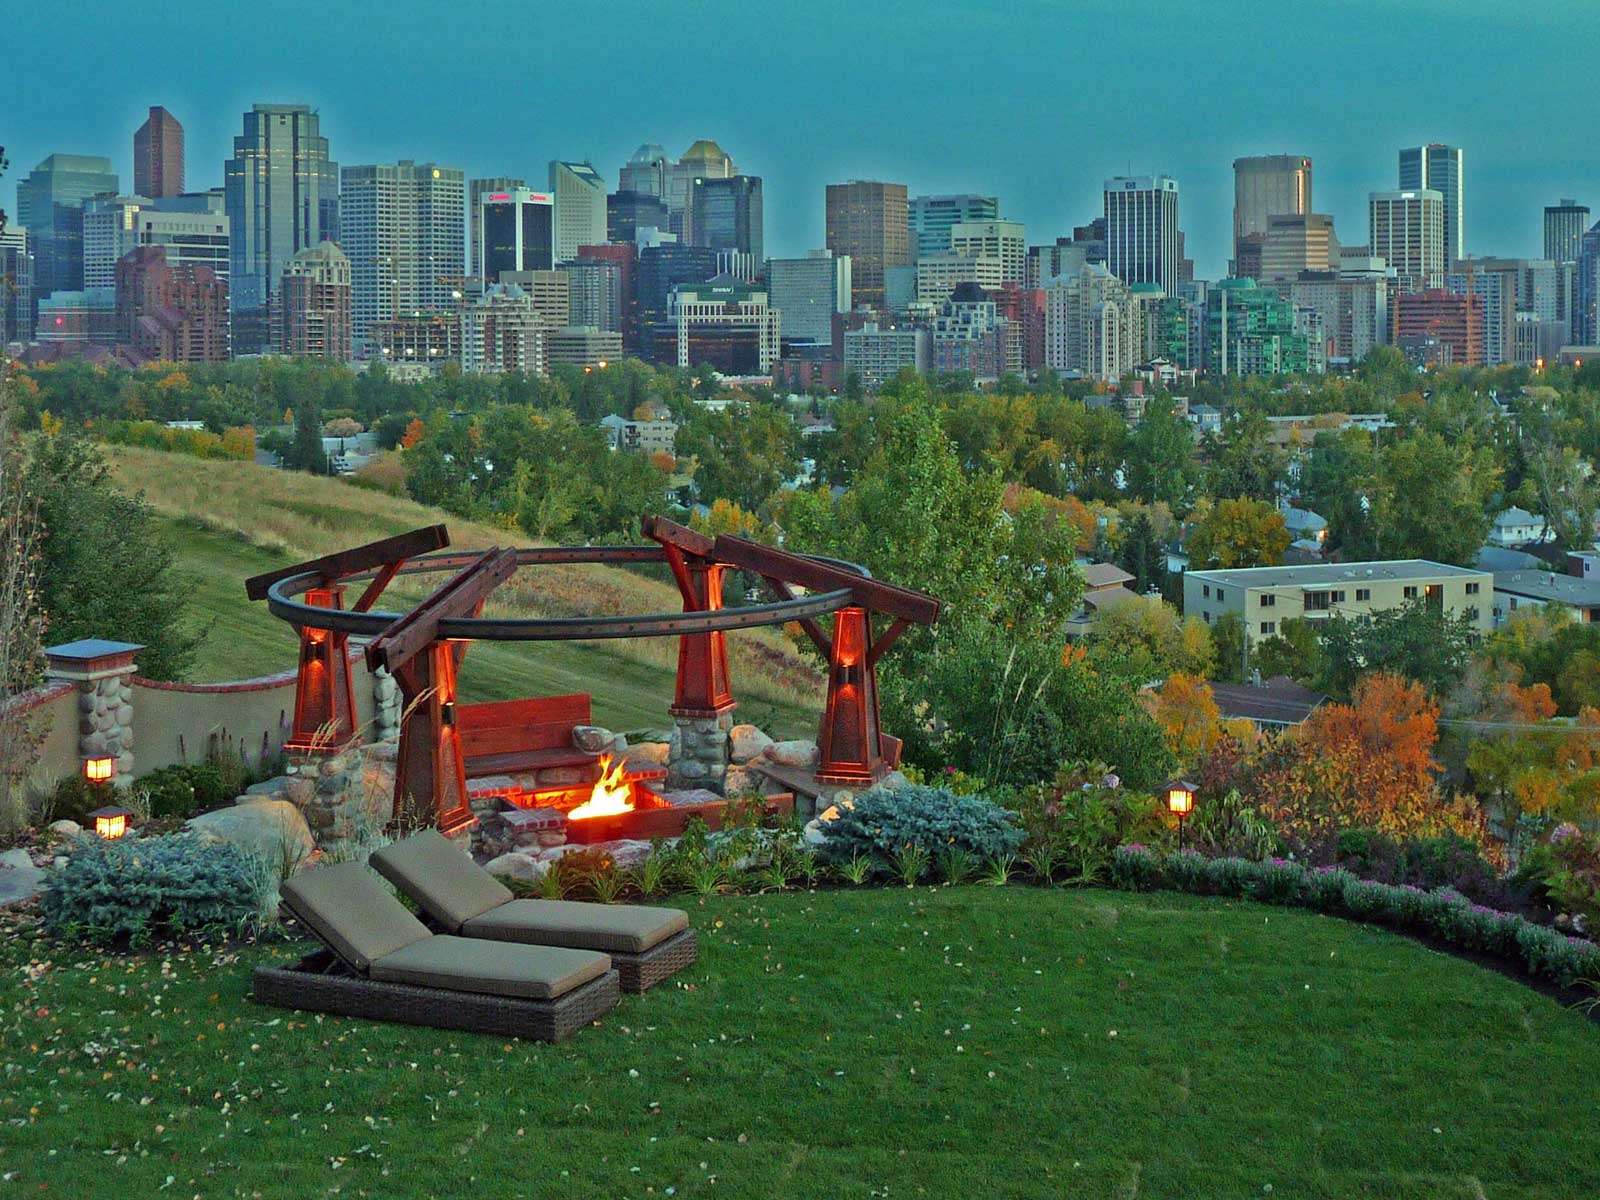 ddla design_rosedale-residence-1_08_city-view-from-house.jpg